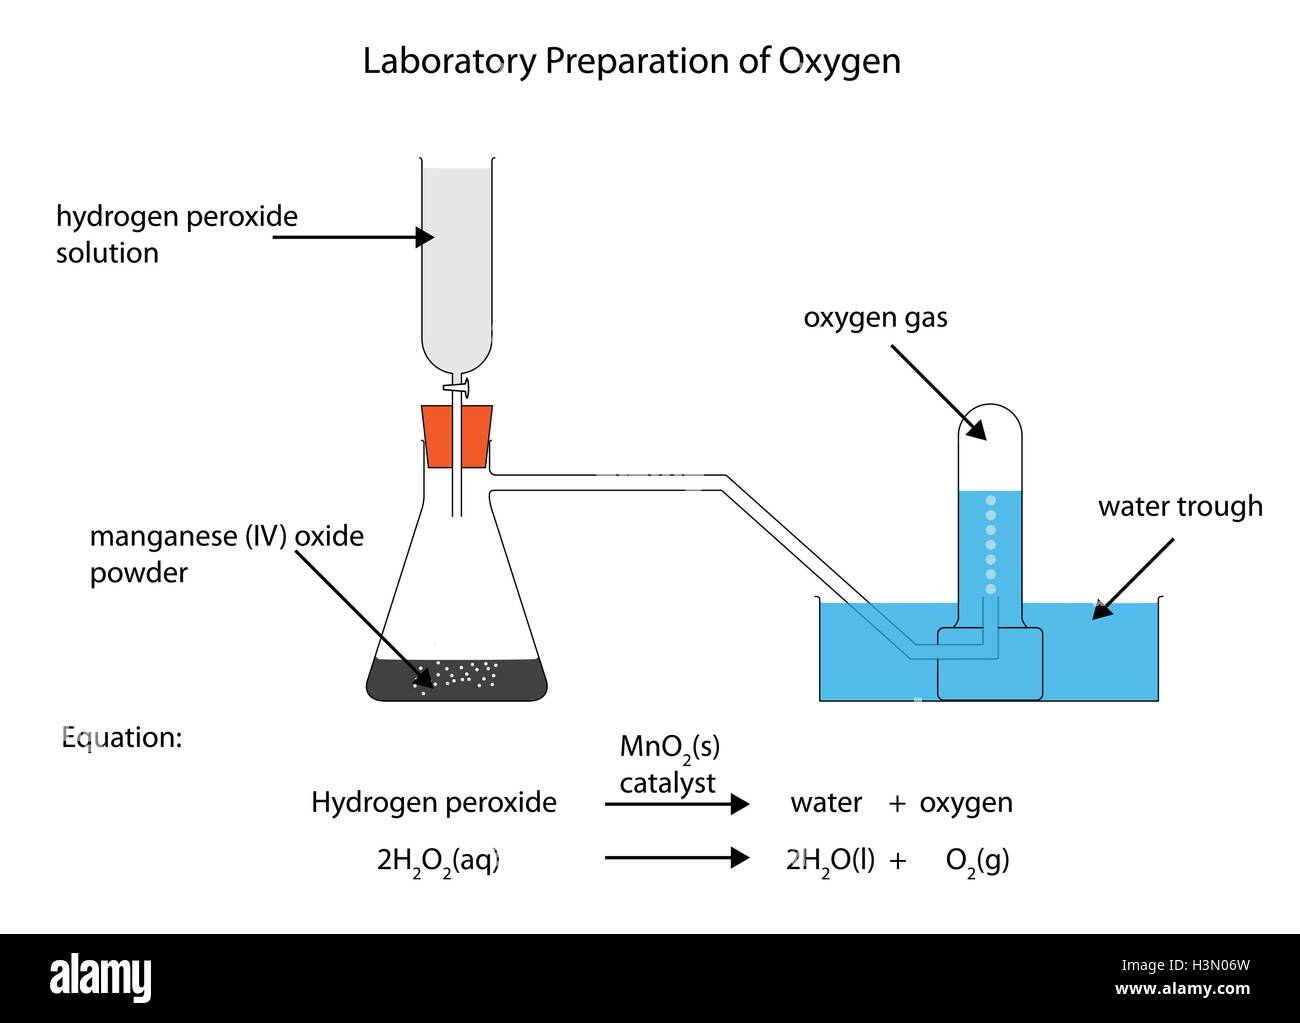 full labelled diagram of the laboratory preparation of oxygen from Ij Diagram full labelled diagram of the laboratory preparation of oxygen from hydrogen peroxide and manganese iv oxide